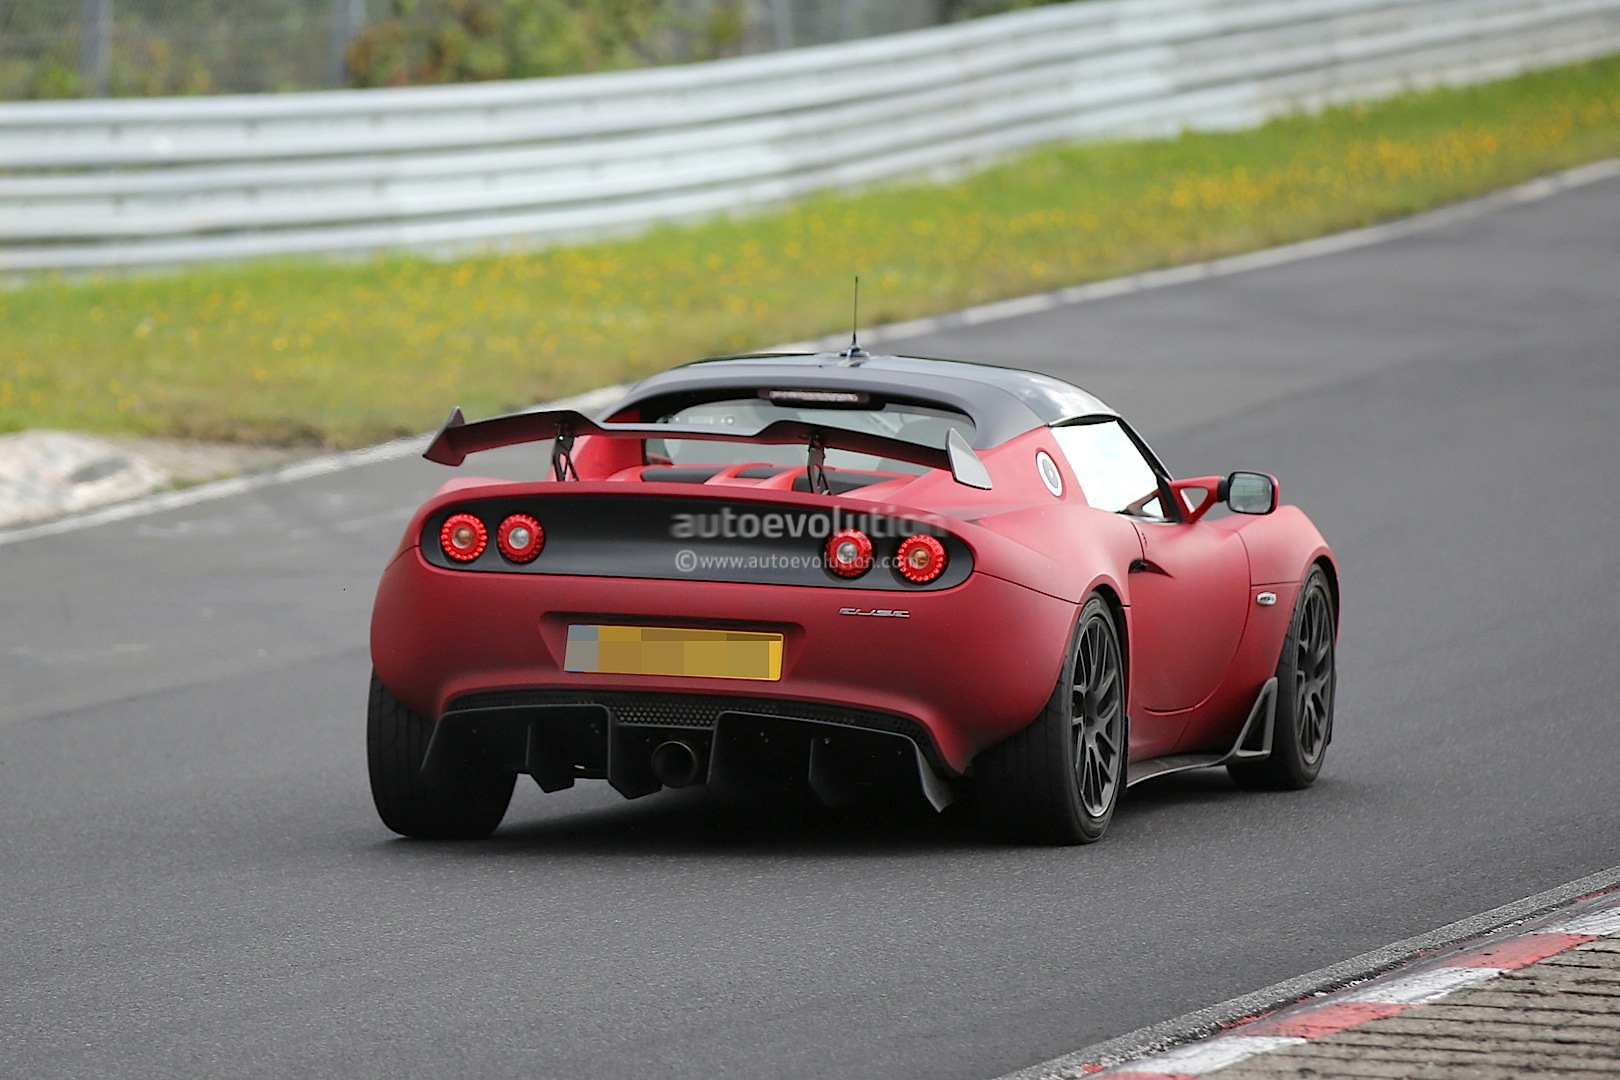 https://s1.cdn.autoevolution.com/images/news/gallery/lotus-elise-r-puts-the-hammer-down-on-the-nurburgring-nordschleife-photo-gallery_20.jpg